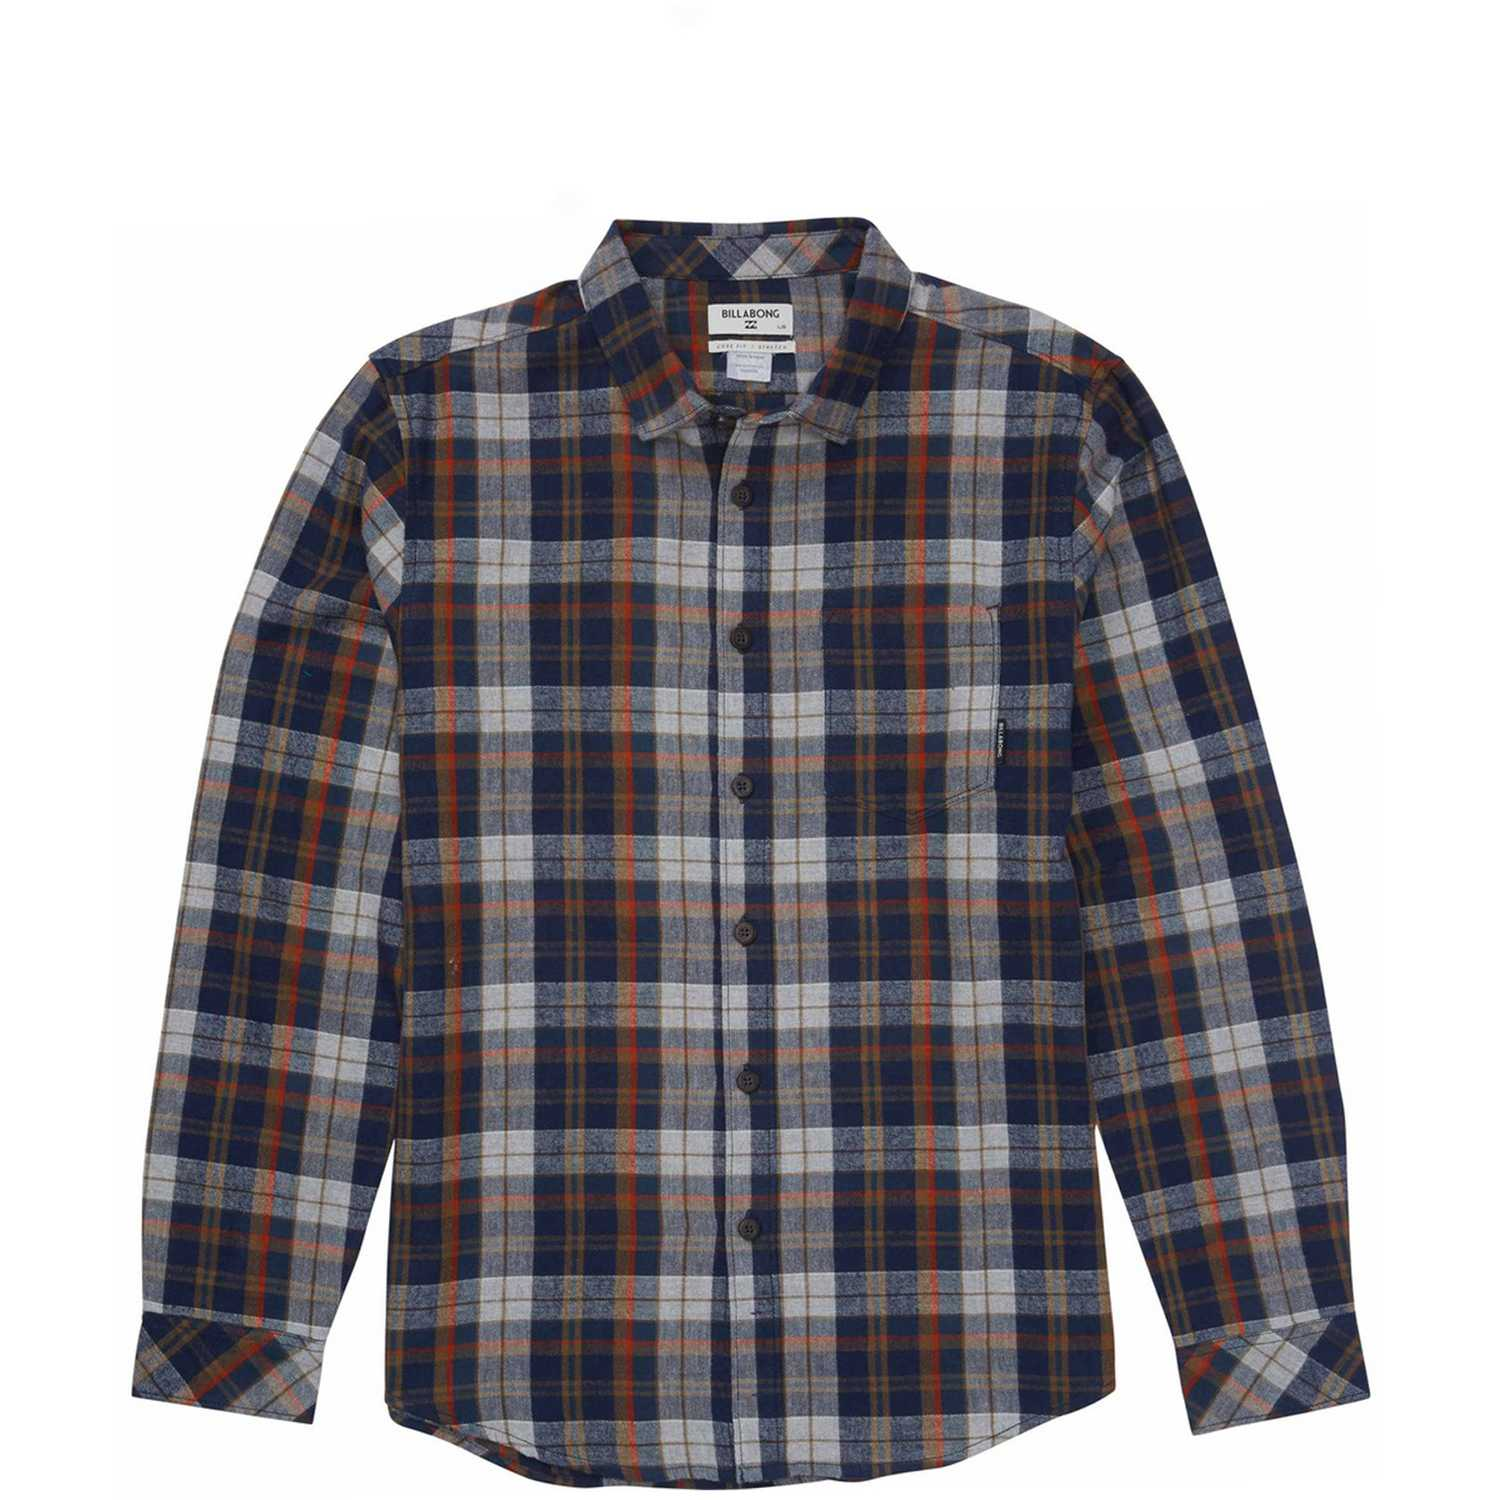 Camisa de Hombre Billabong Navy coastline flannel